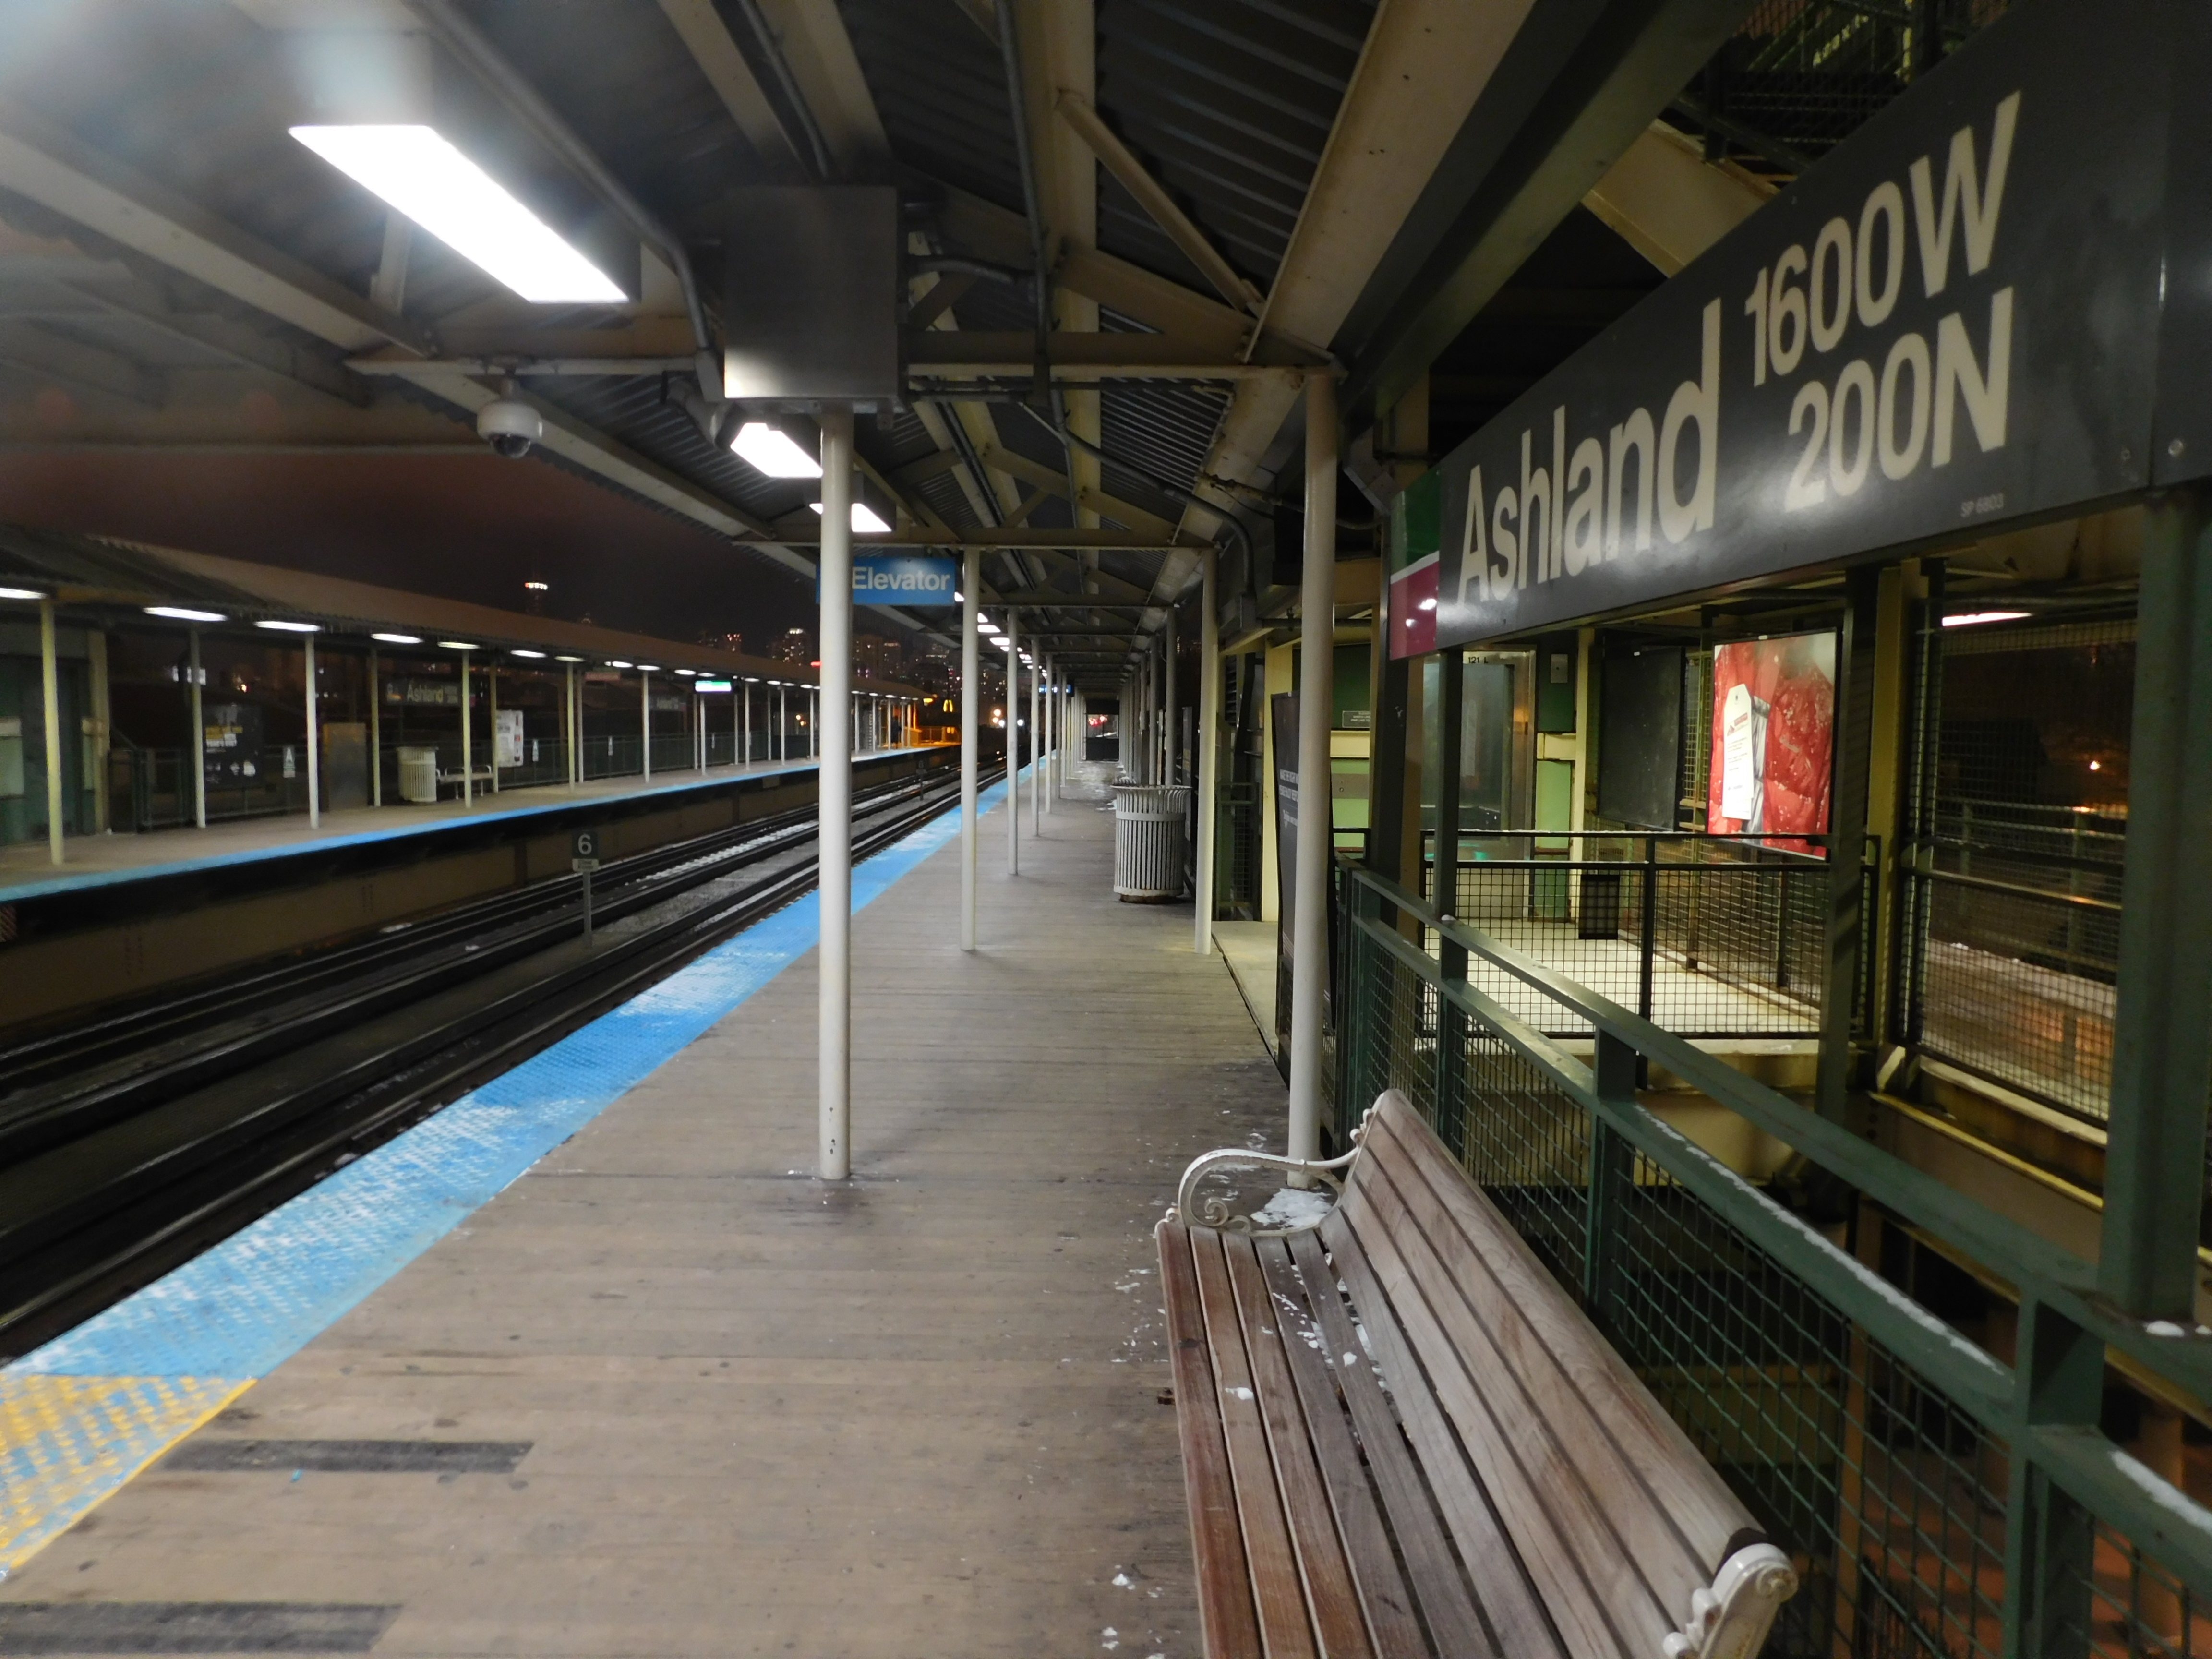 Ashland station (CTA Green and Pink Lines) - Wikipedia on nj transit bus map, chicago transit authority bus map, short line bus map, chicago bus system map, vta bus map, ripta bus map, westchester bus map, chicago public bus map, rta bus map, muni bus map, septa bus map, njt bus map, rtc bus map, boulder bus map, florence bus map, la metro bus map, cat bus map, jta bus map, trimet bus map, pace bus map,